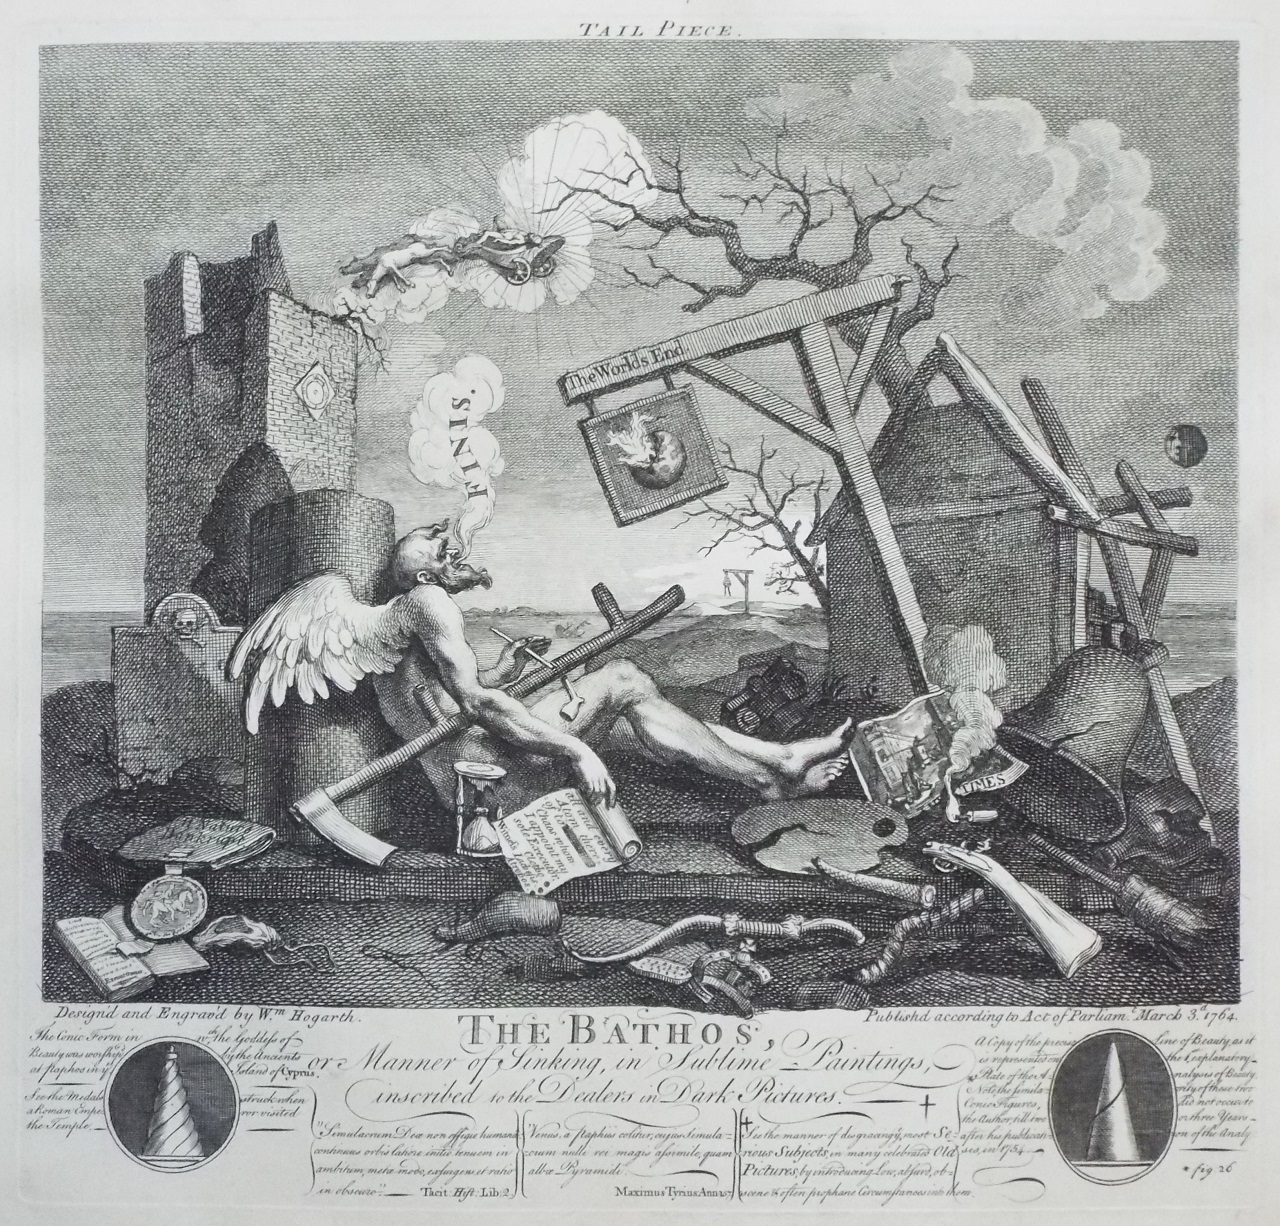 Print - Finis The Bathos - Hogarth